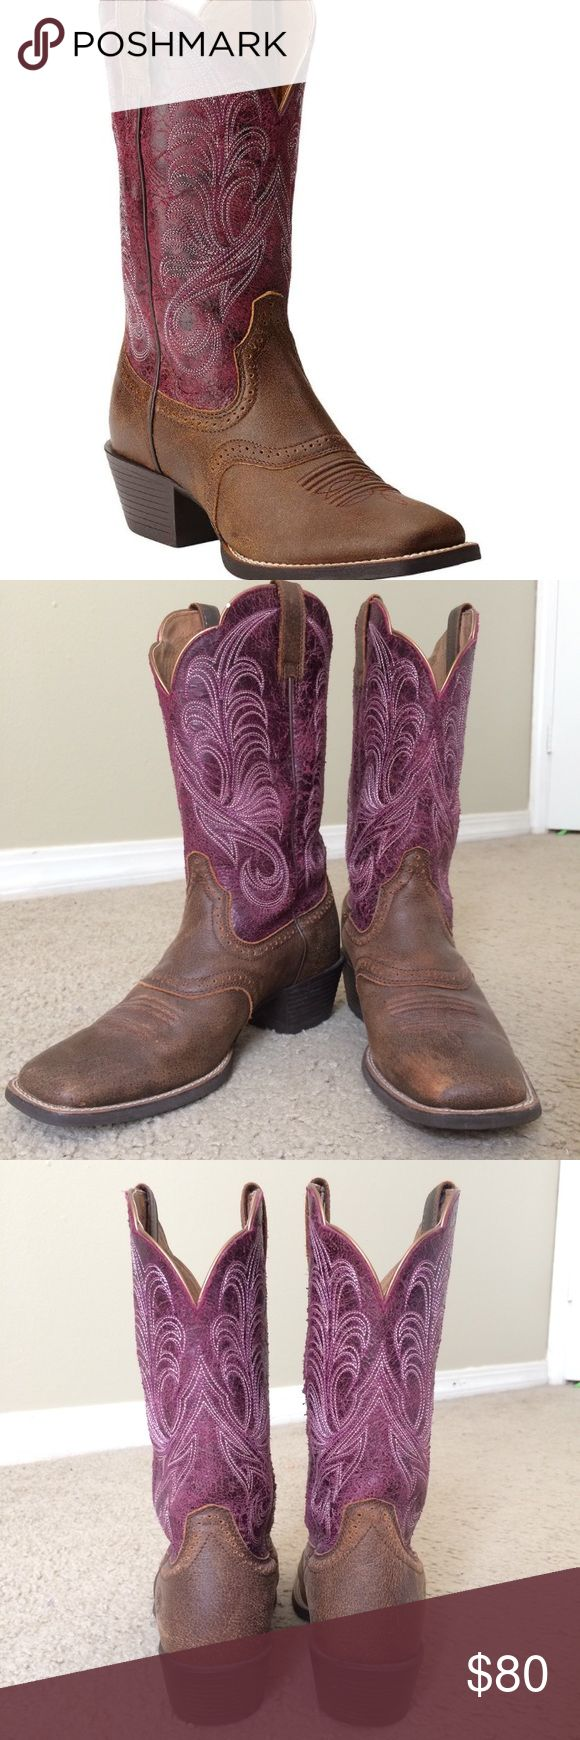 Ariat Women's Mesquite Vintage Western Boots These boots are AMAZING. 2-tone leather in a crinkled purple color, and brown leather bottom. These are seriously perfect for wearing all day. I wore these to several stock shows where I was on my feet for 8+ hours and they were supremely comfortable. Very minor wear and in excellent condition. Size 7.5 B. Ariat Shoes Heeled Boots